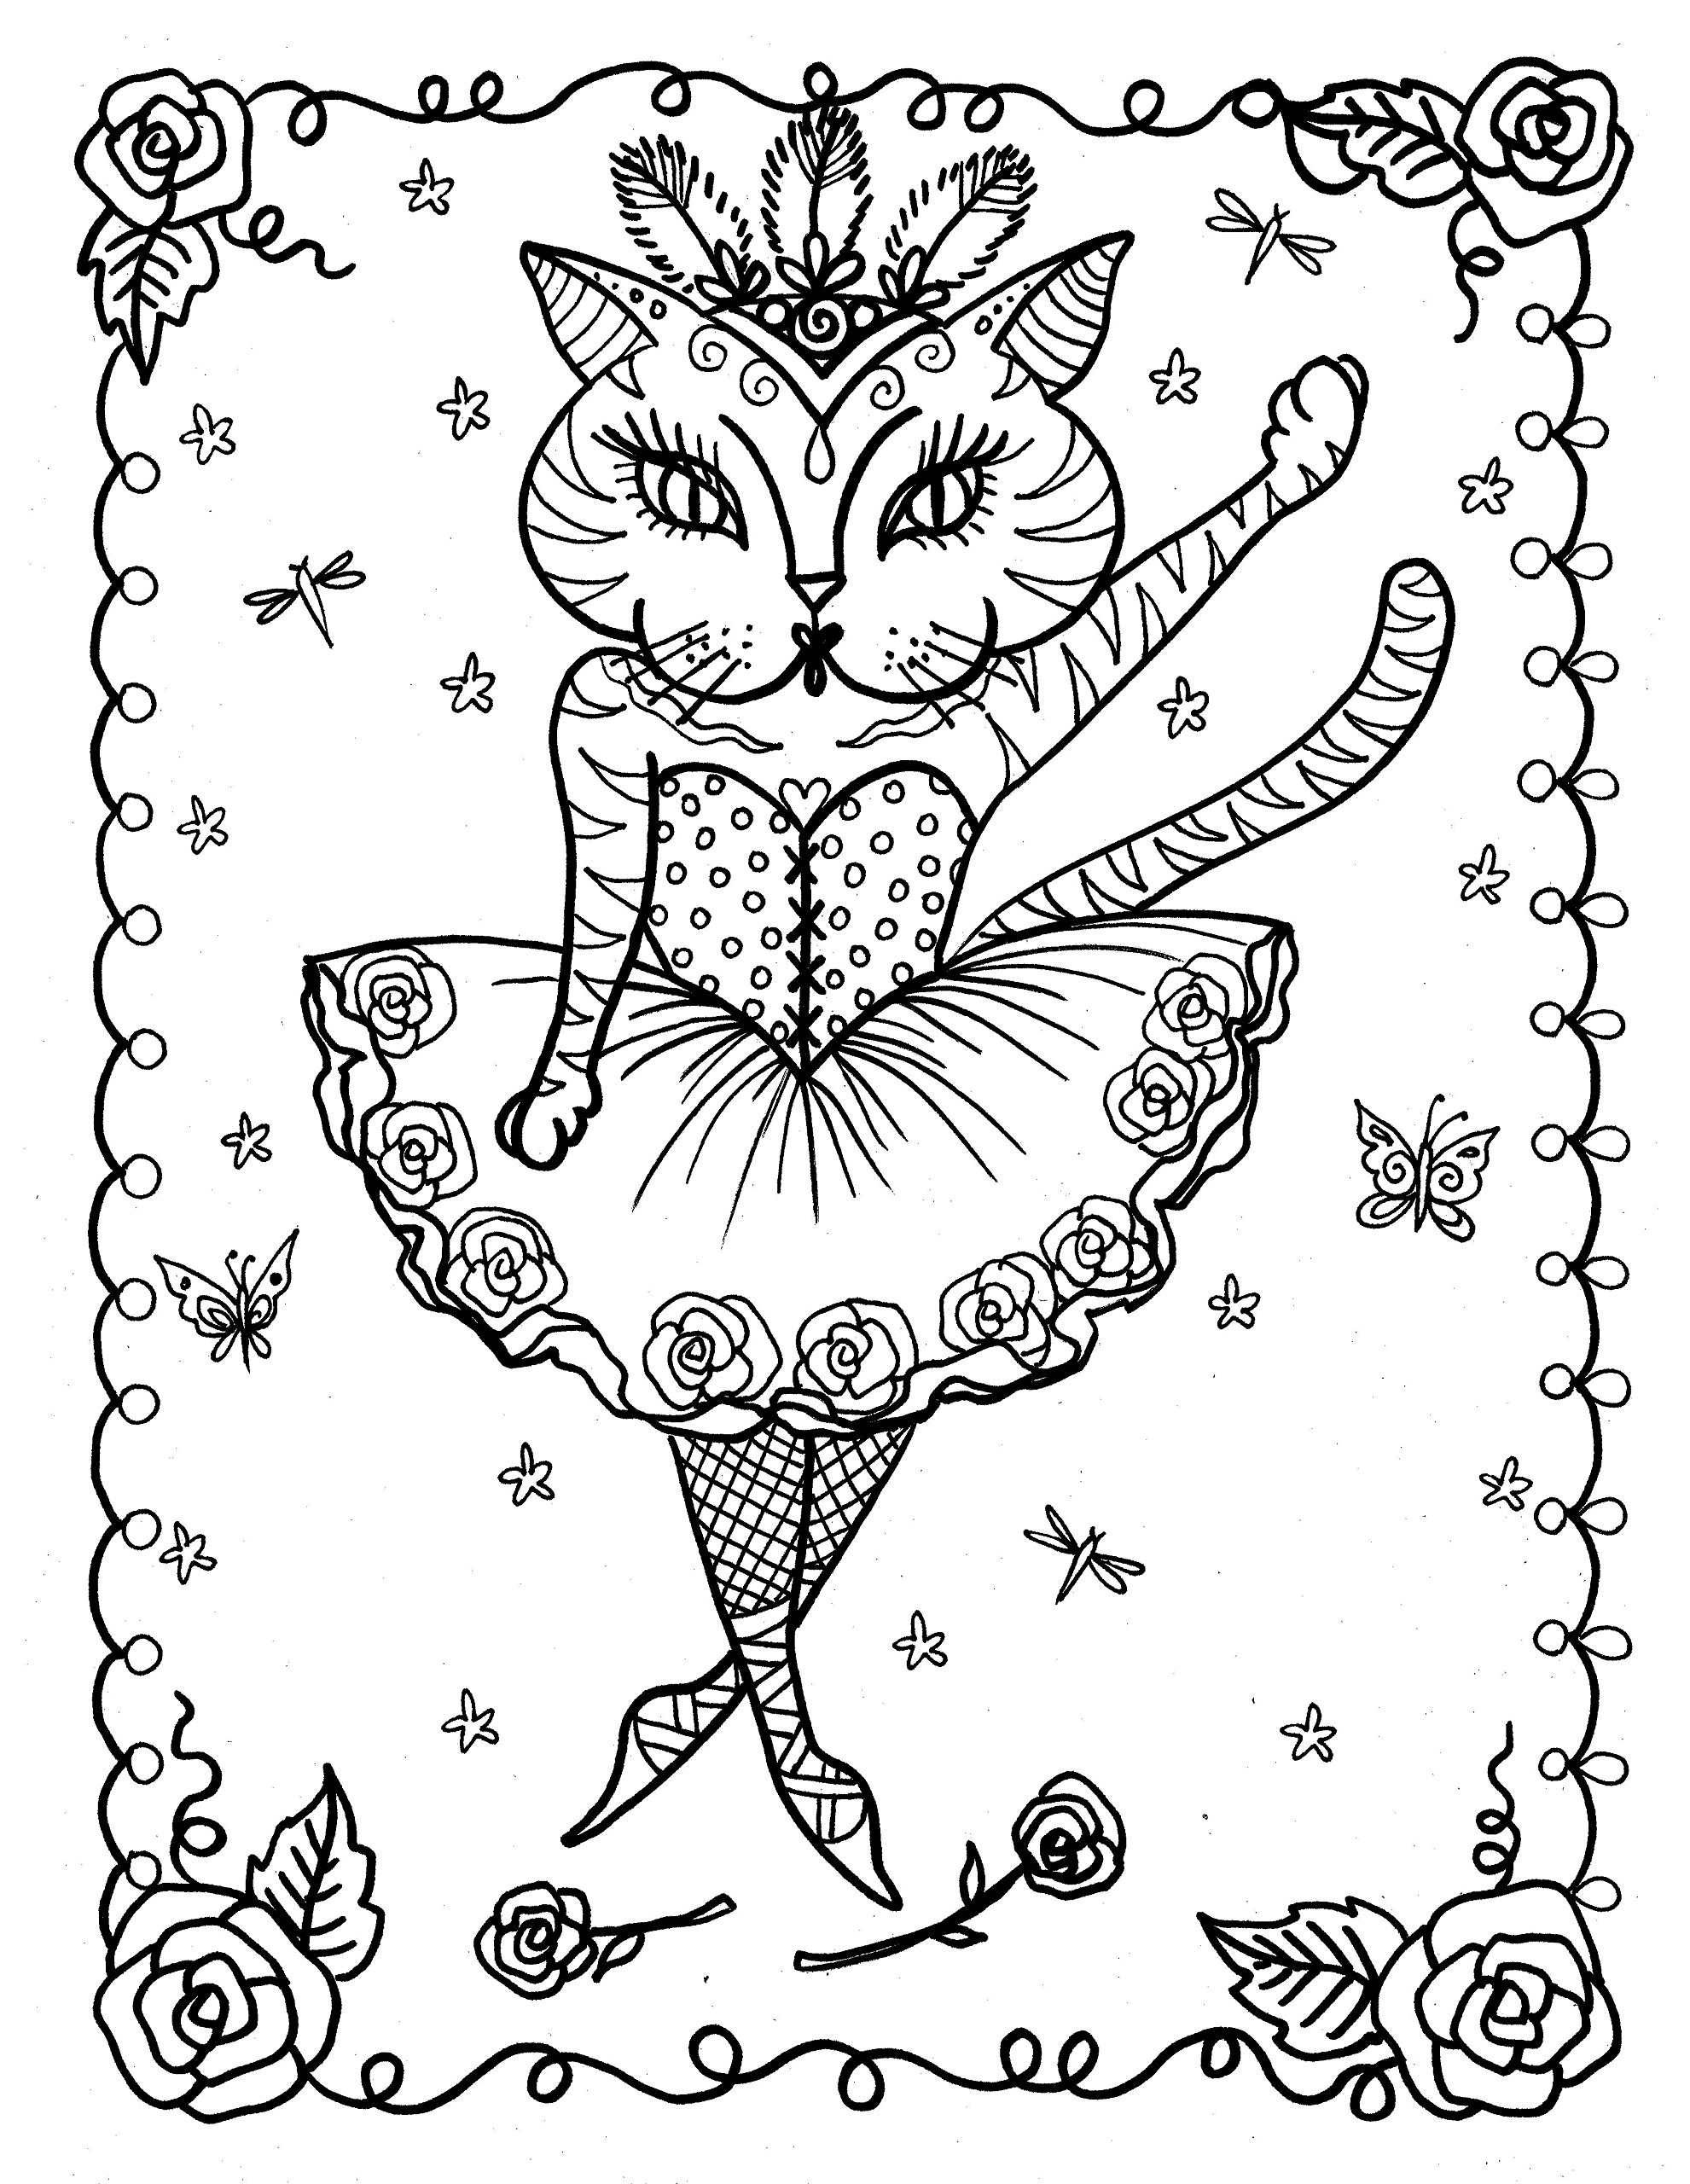 A fun magic coloring book amazon - A Fun Magic Coloring Book Amazon Fantasy Cats A Magical Adventure Of Fun And Crazy